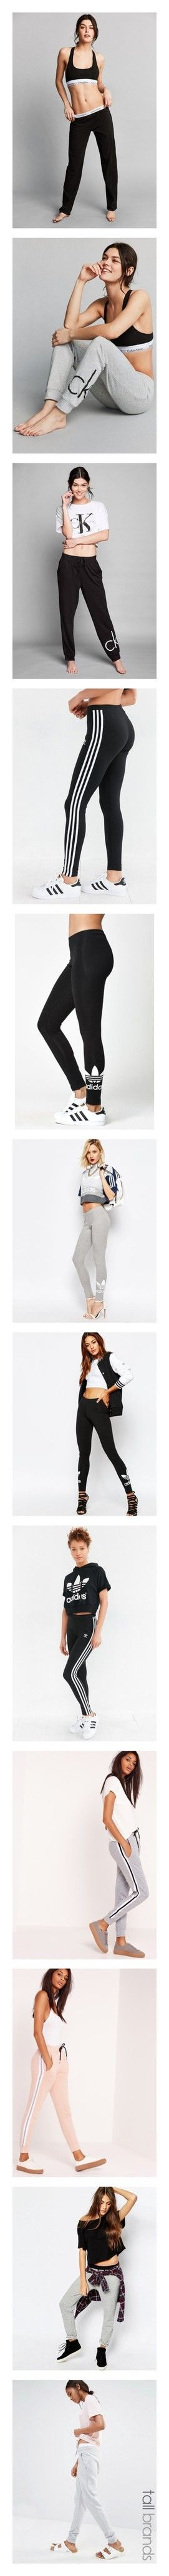 """""""lazy day clothes/workout"""" by aundreadiaz ❤ liked on Polyvore featuring calvin klein, activewear, activewear pants, grey, logo sweatpants, gray sweat pants, sweat pants, jogger sweat pants, gray sweatpants and jogger sweatpants"""